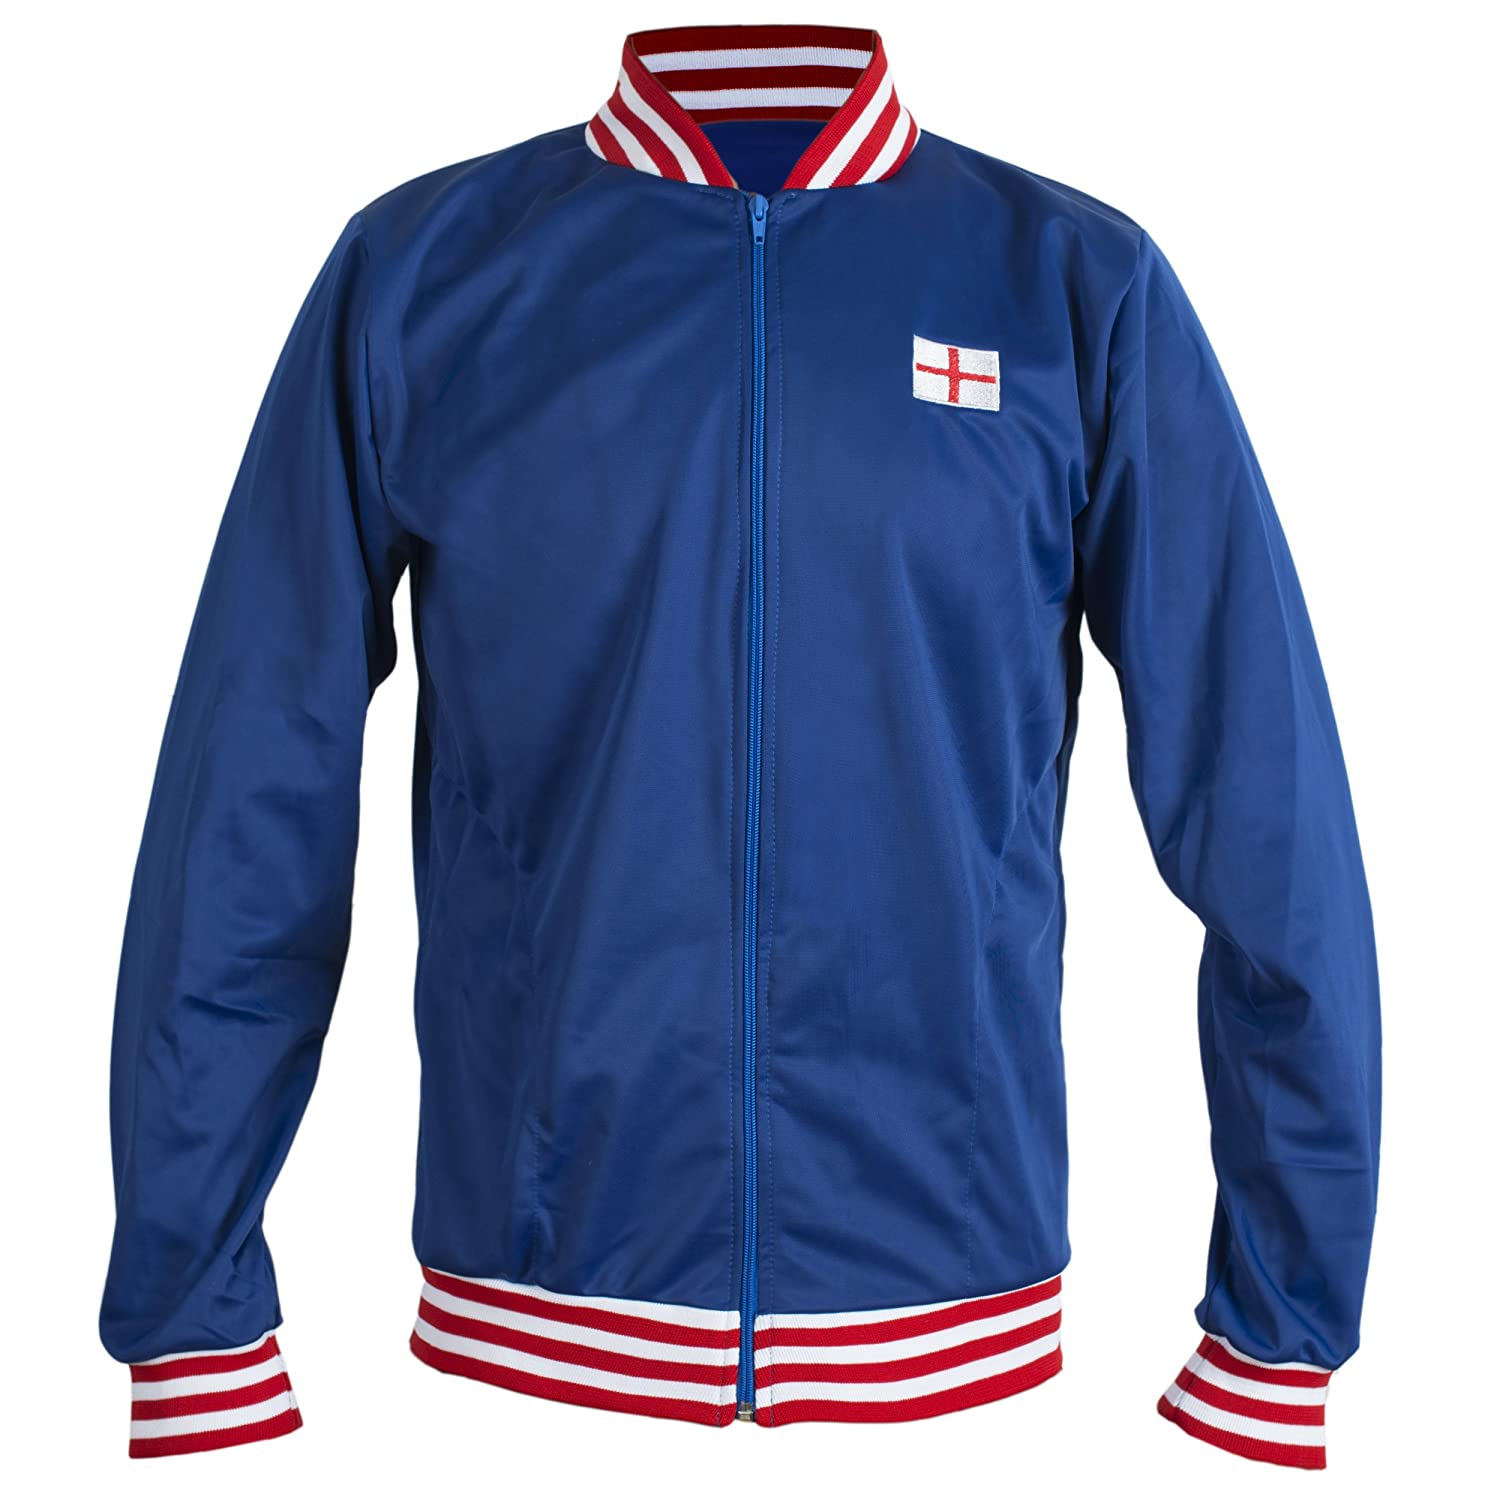 70s Workout Clothes | 80s Tracksuits, Running Shorts, Leotards England 1966 Retro Football Jacket Classic Vintage Tracksuit Jumper Man Top-Replica $53.95 AT vintagedancer.com